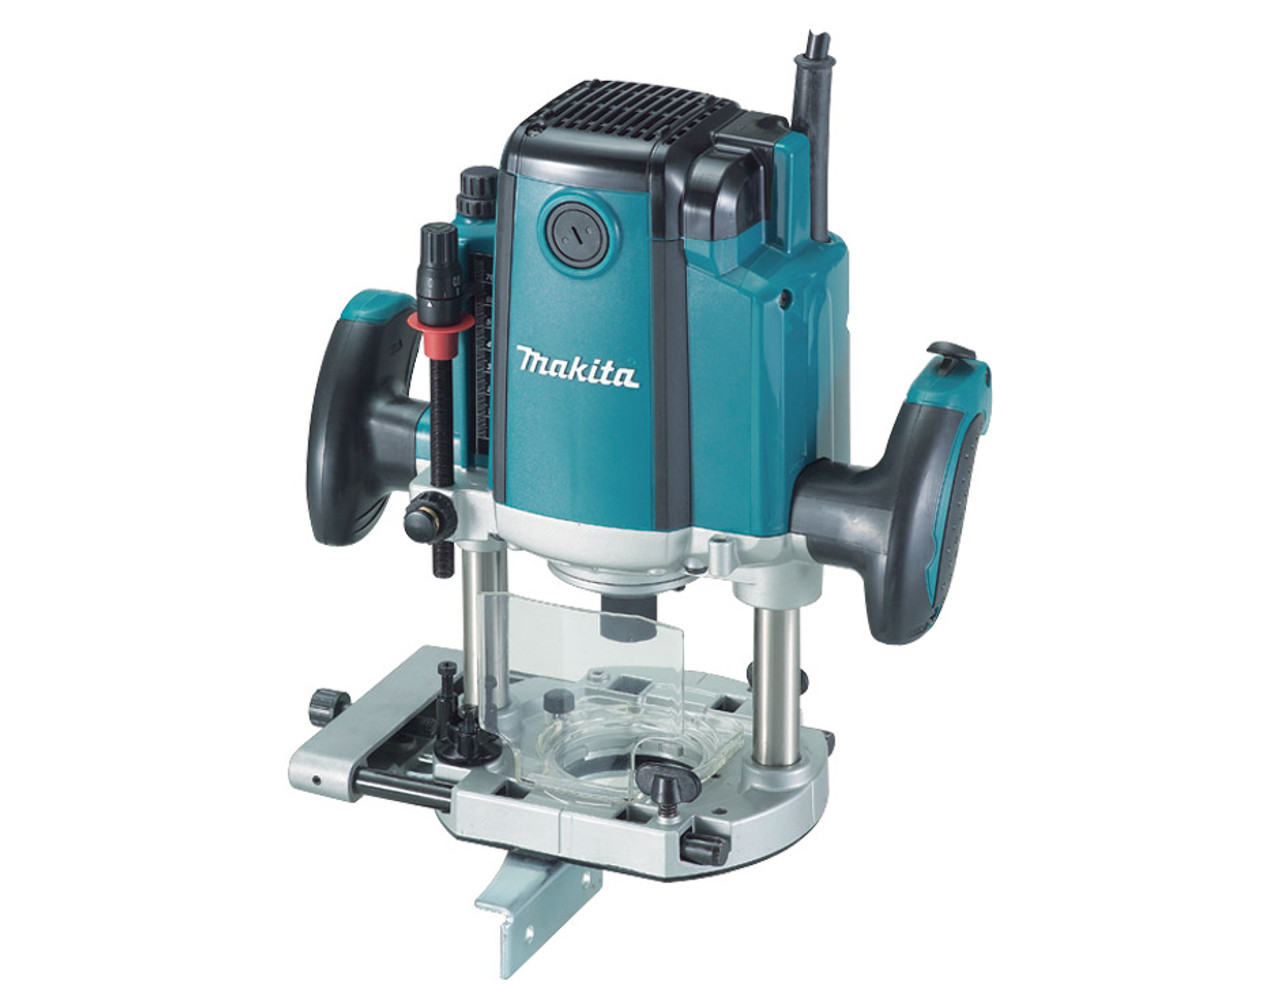 """Makita Electronic Plunge Router, 1/2"""", 1850W RP1800"""